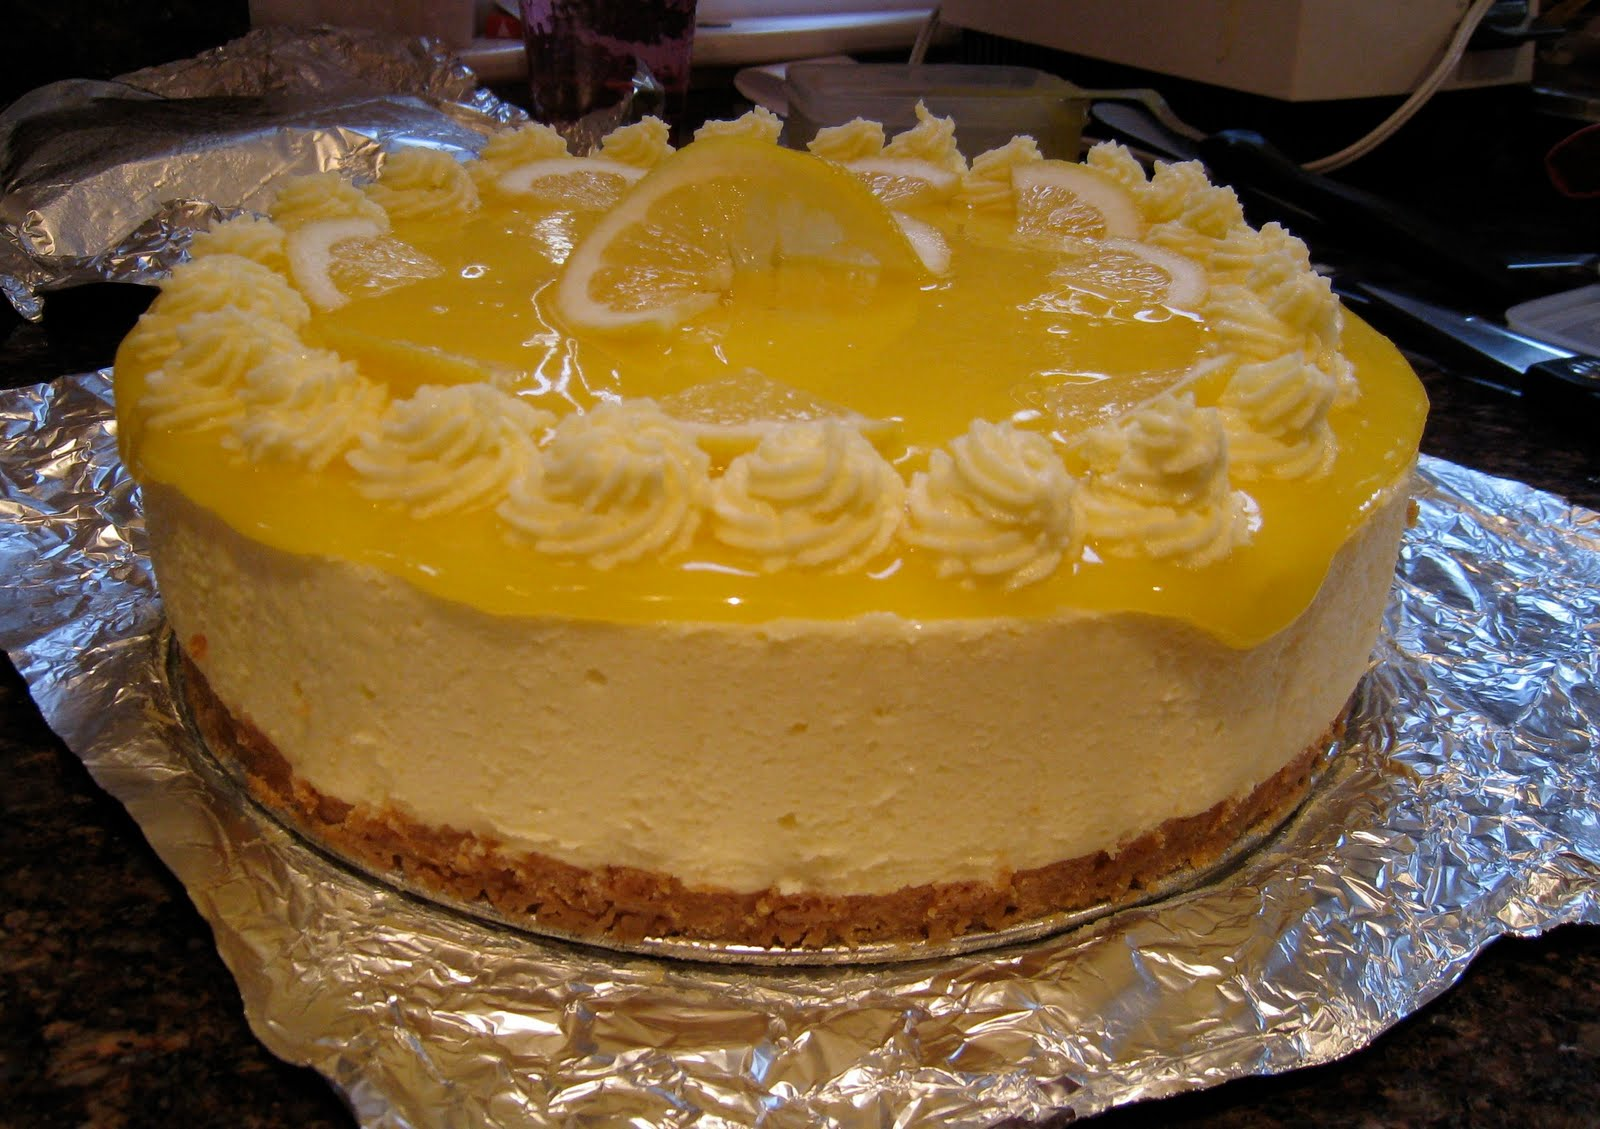 ... Cake: 30 Cakes - 2 Friends - 52 Weeks: Cake #16 Lemon Curd Mousse Cake